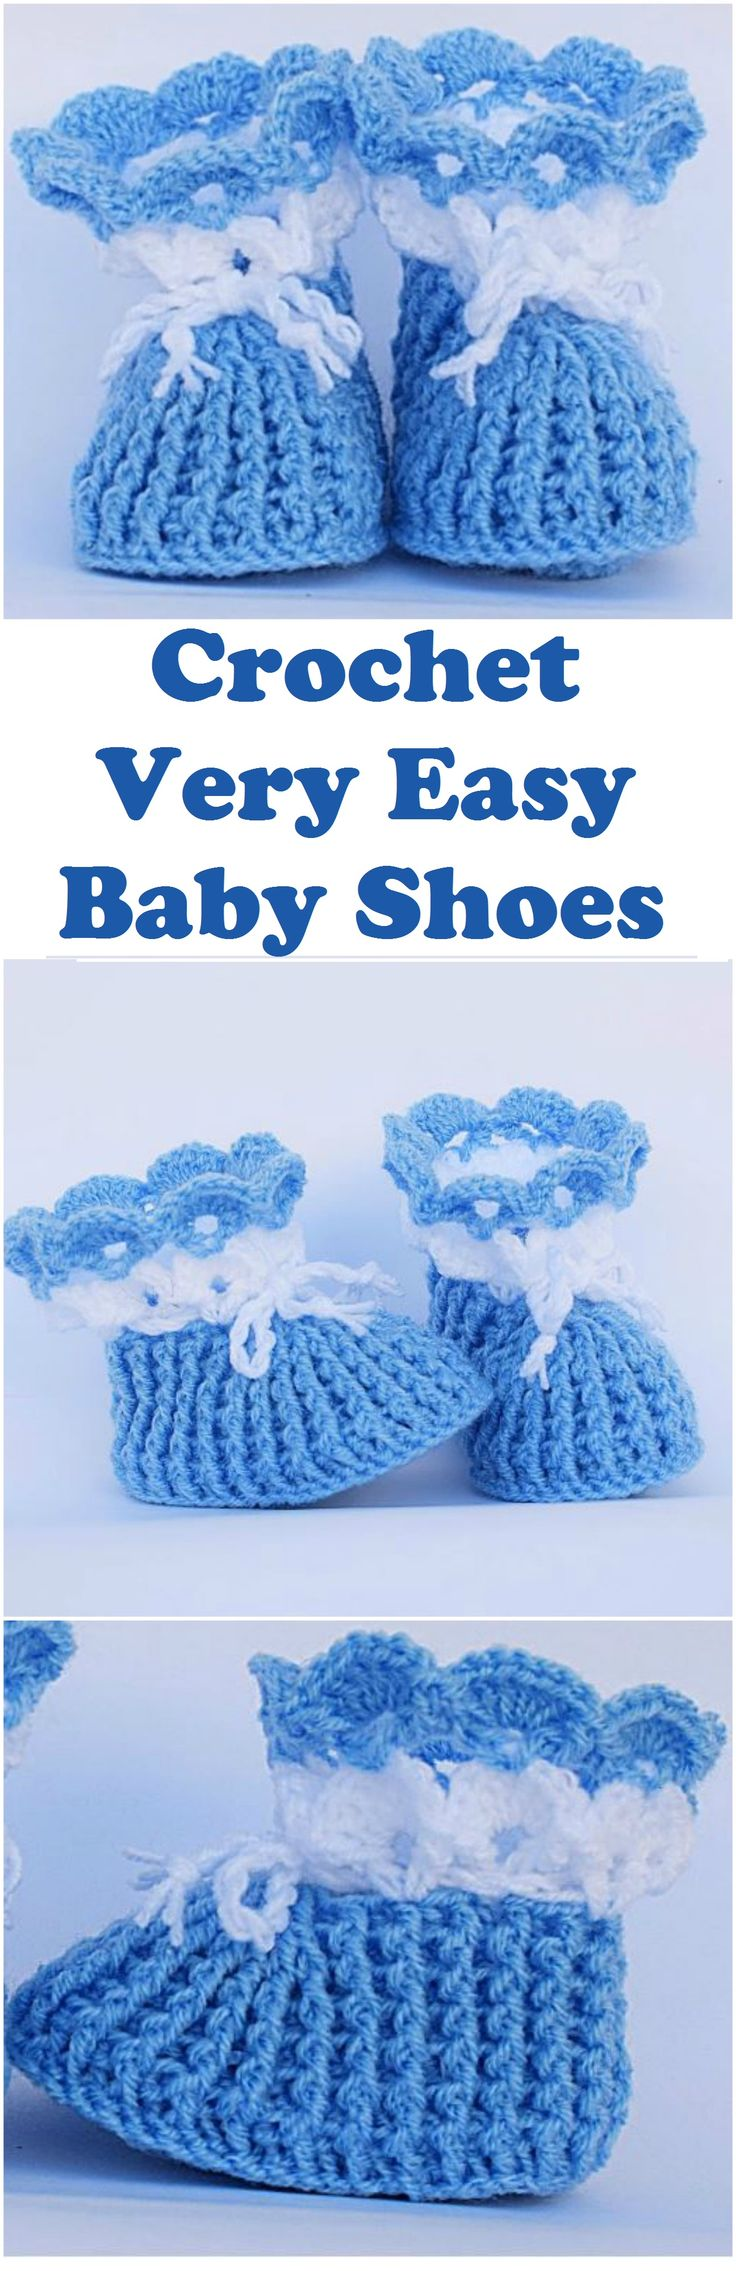 Crochet Very Easy Baby Shoes